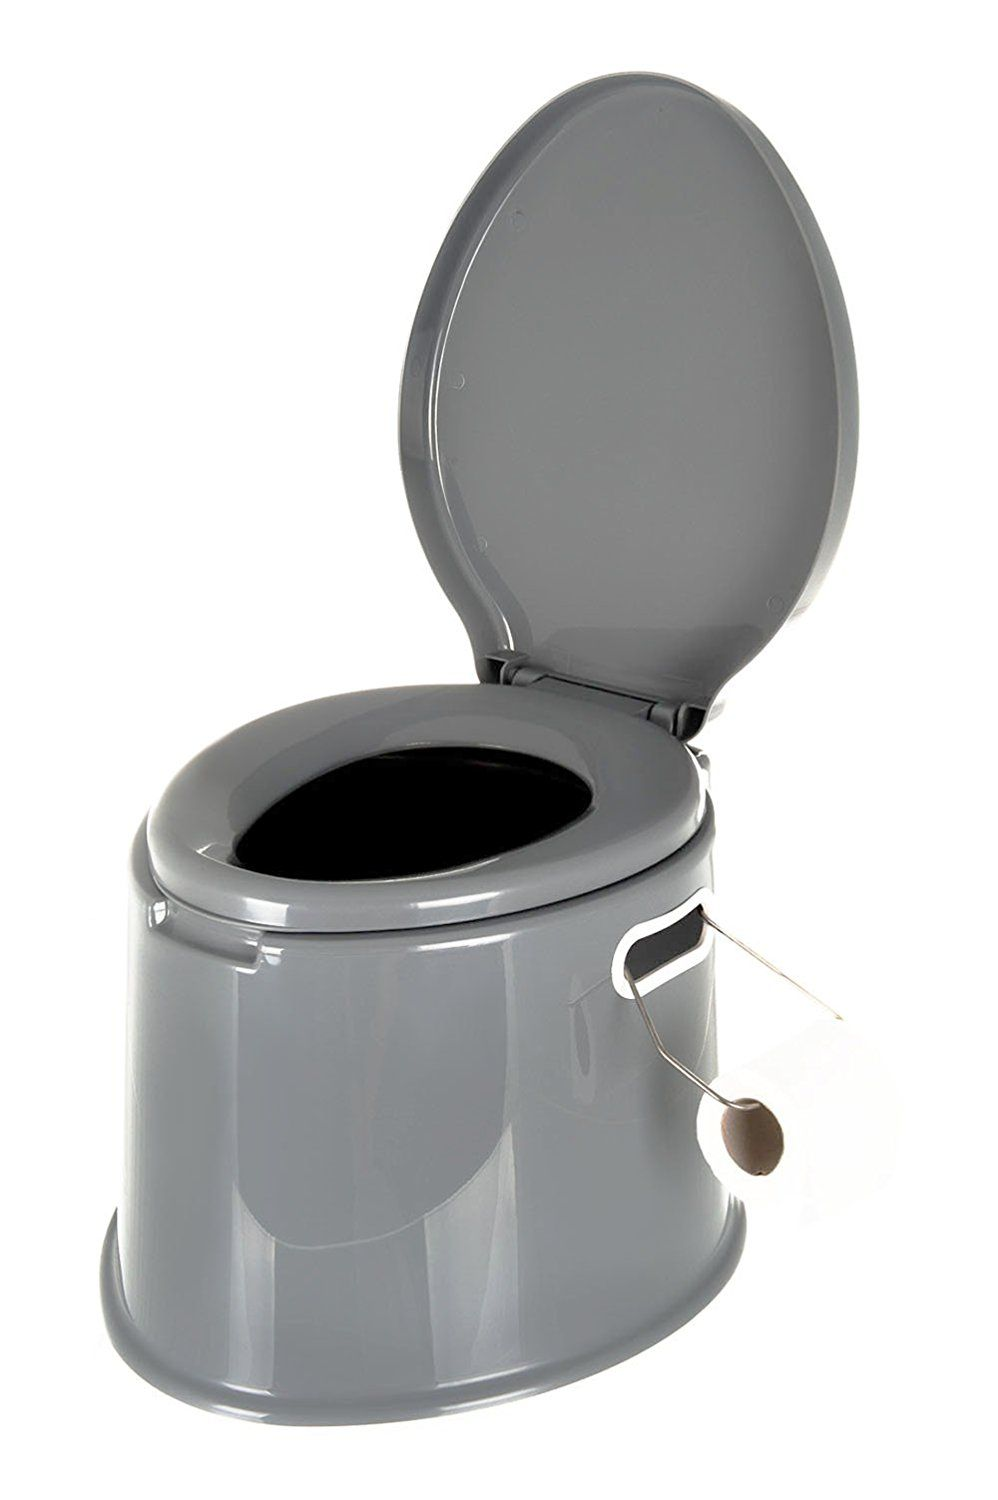 LIVIVO ® Lightweight and Portable 5L Camping Toilet with Seat, Lid ...